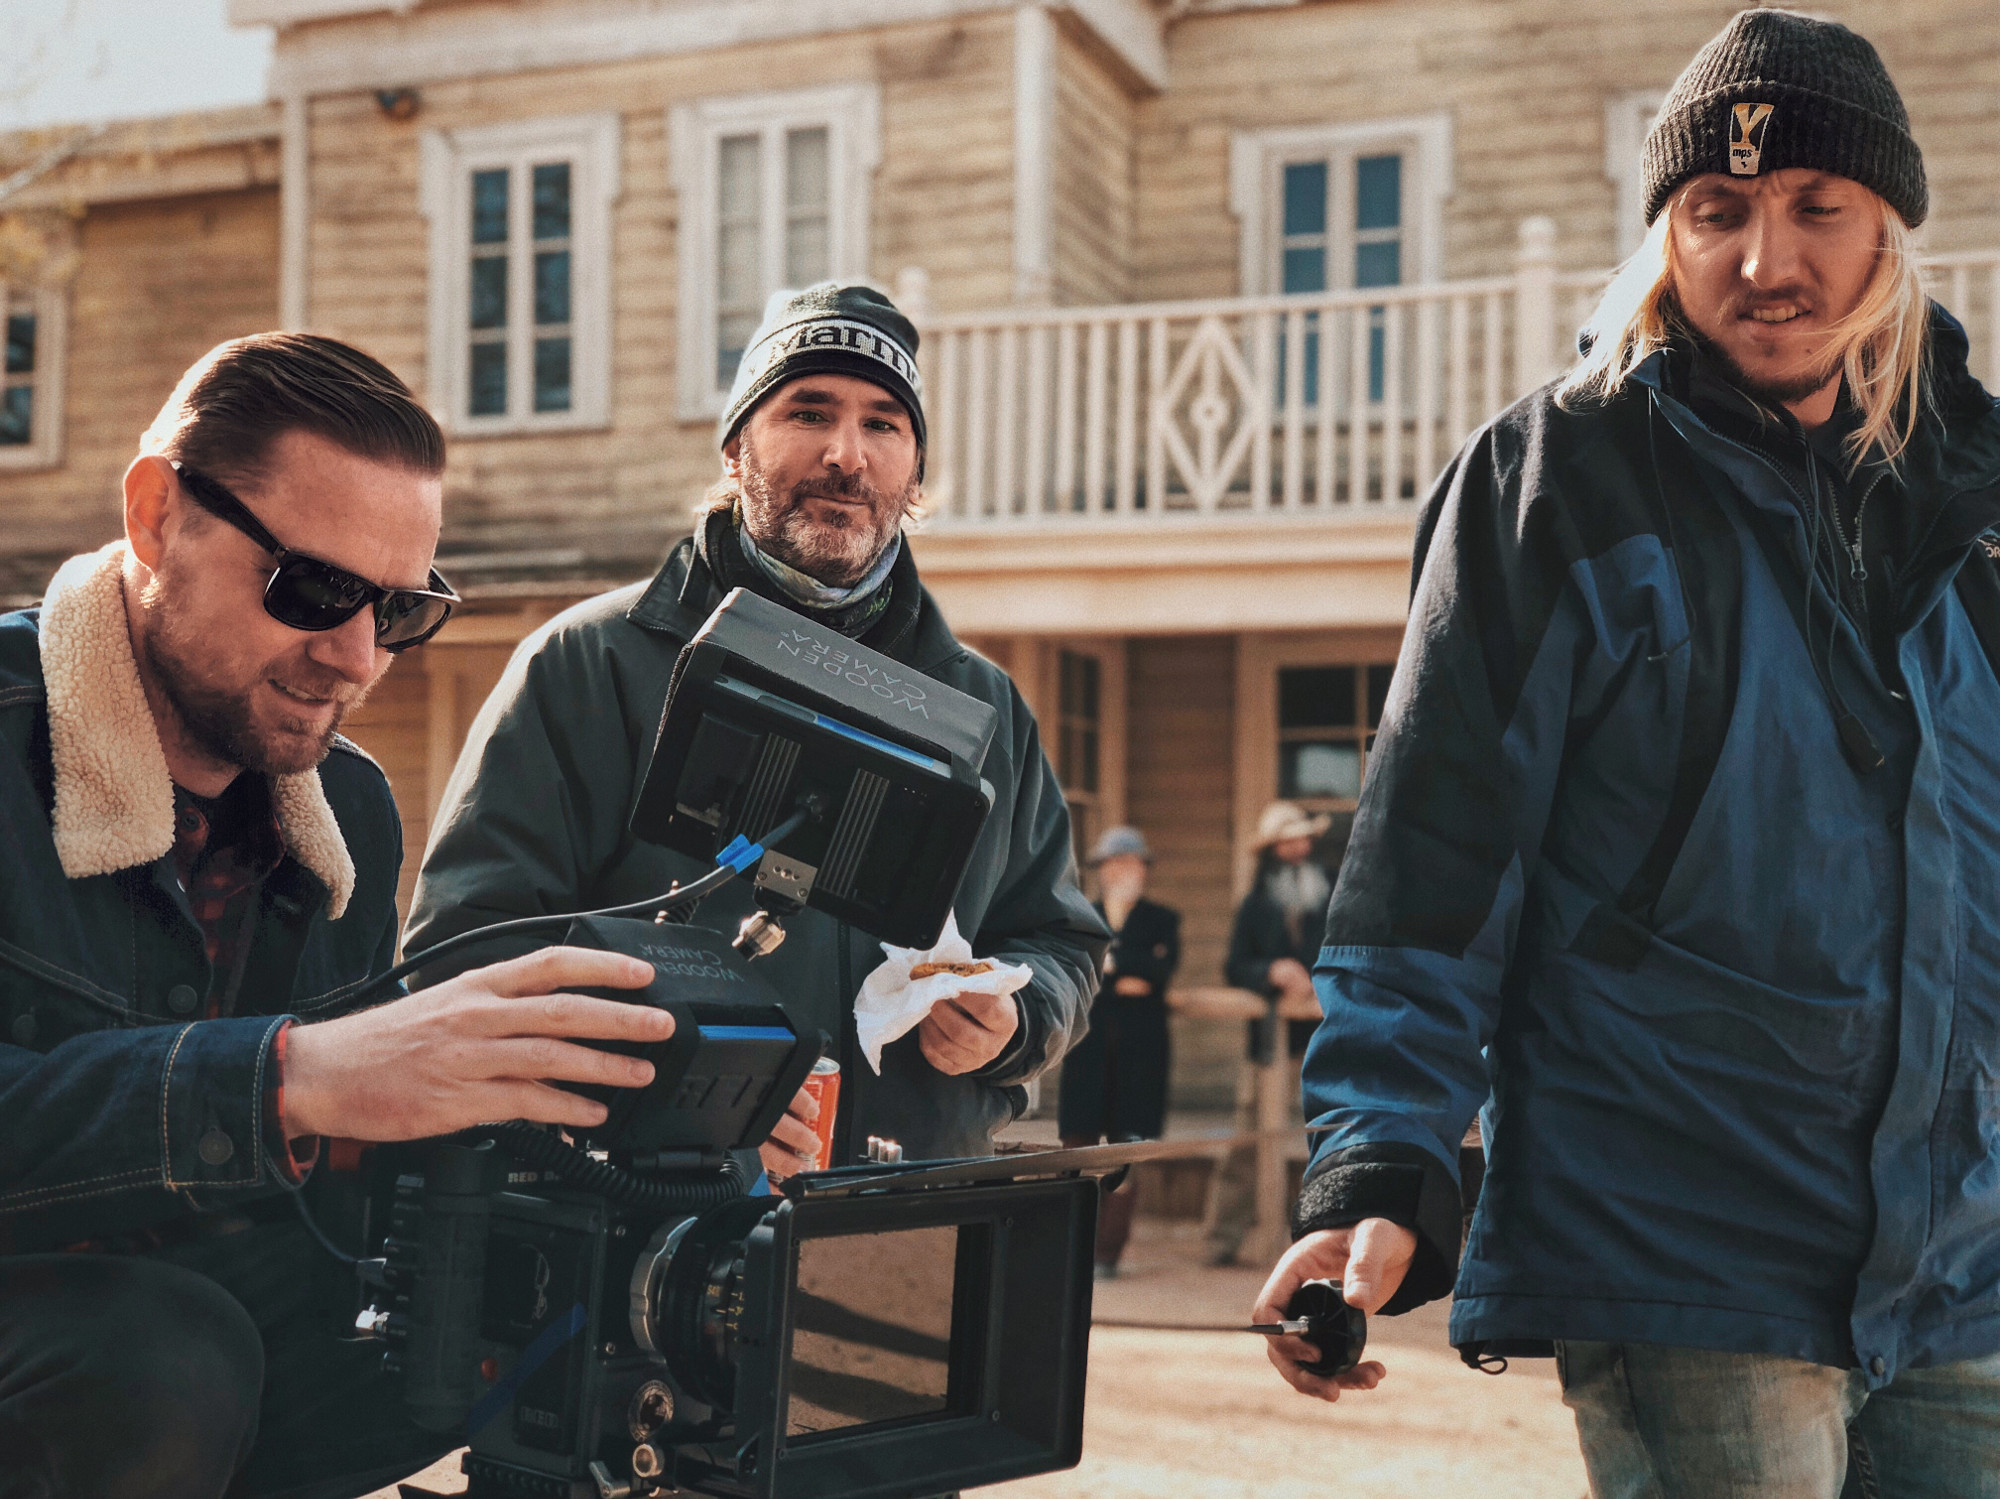 factors To Consider When Looking To Hire A Camera Crew Film Crew Chicago Illinois